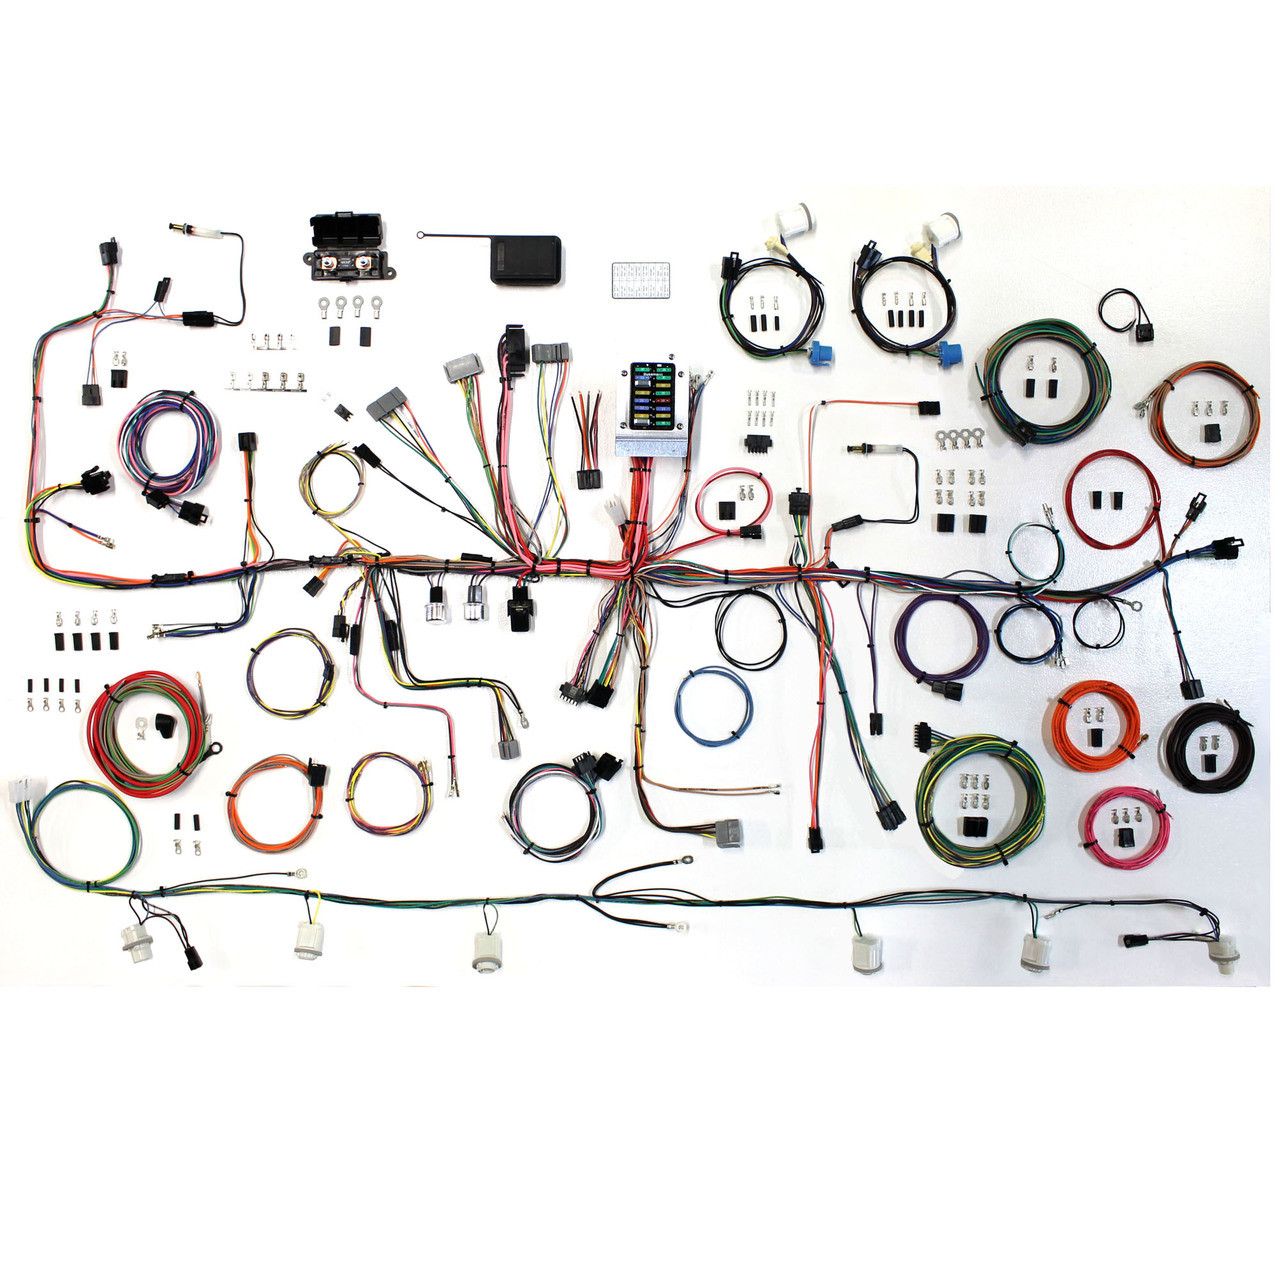 american autowire 1987 1989 ford mustang fox body classic update complete wiring kit [ 1280 x 1280 Pixel ]